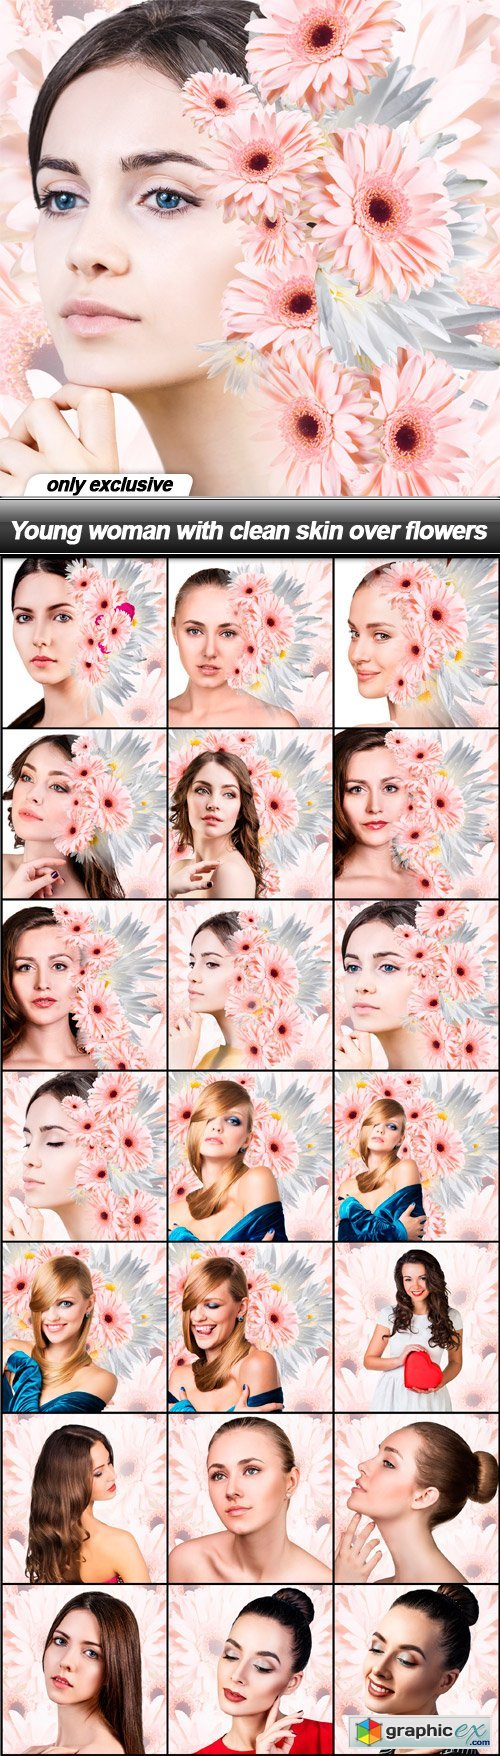 Young woman with clean skin over flowers - 21 UHQ JPEG